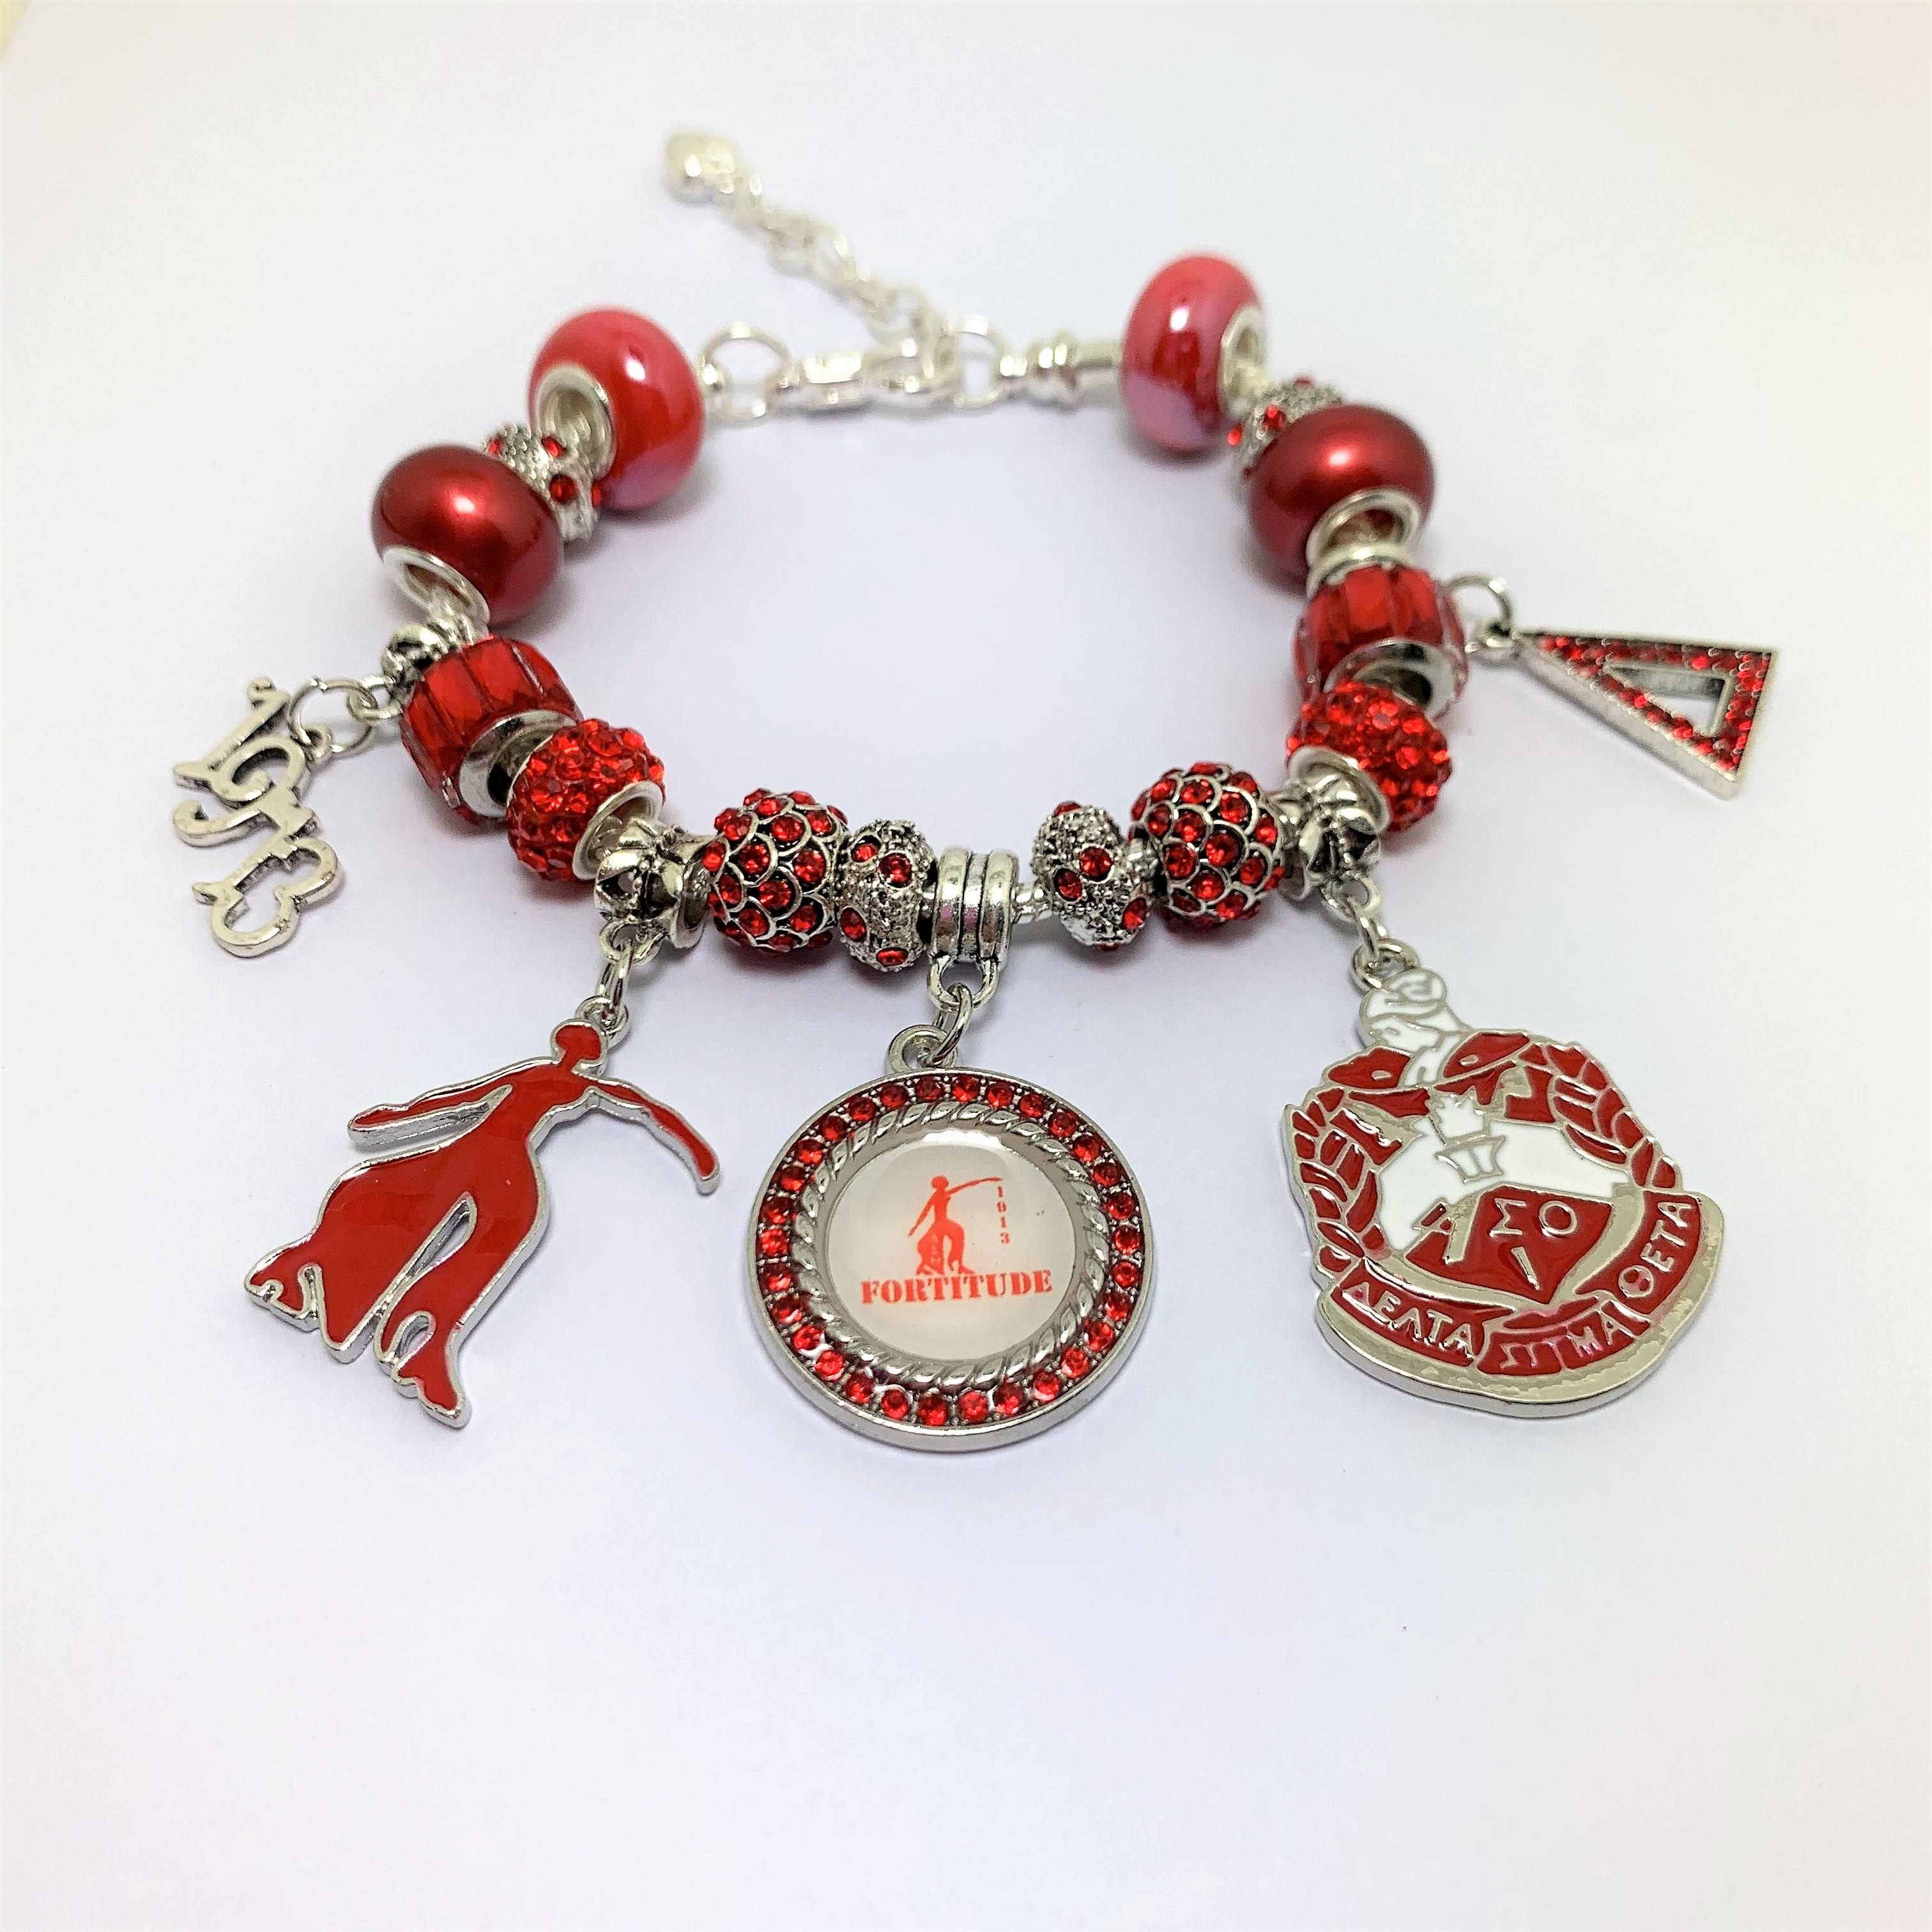 Founded 1913 Greek Letter Sorority Delta Sigma Theta Soror Beads Bracelet Red Enamel Jewelry For Souvenir